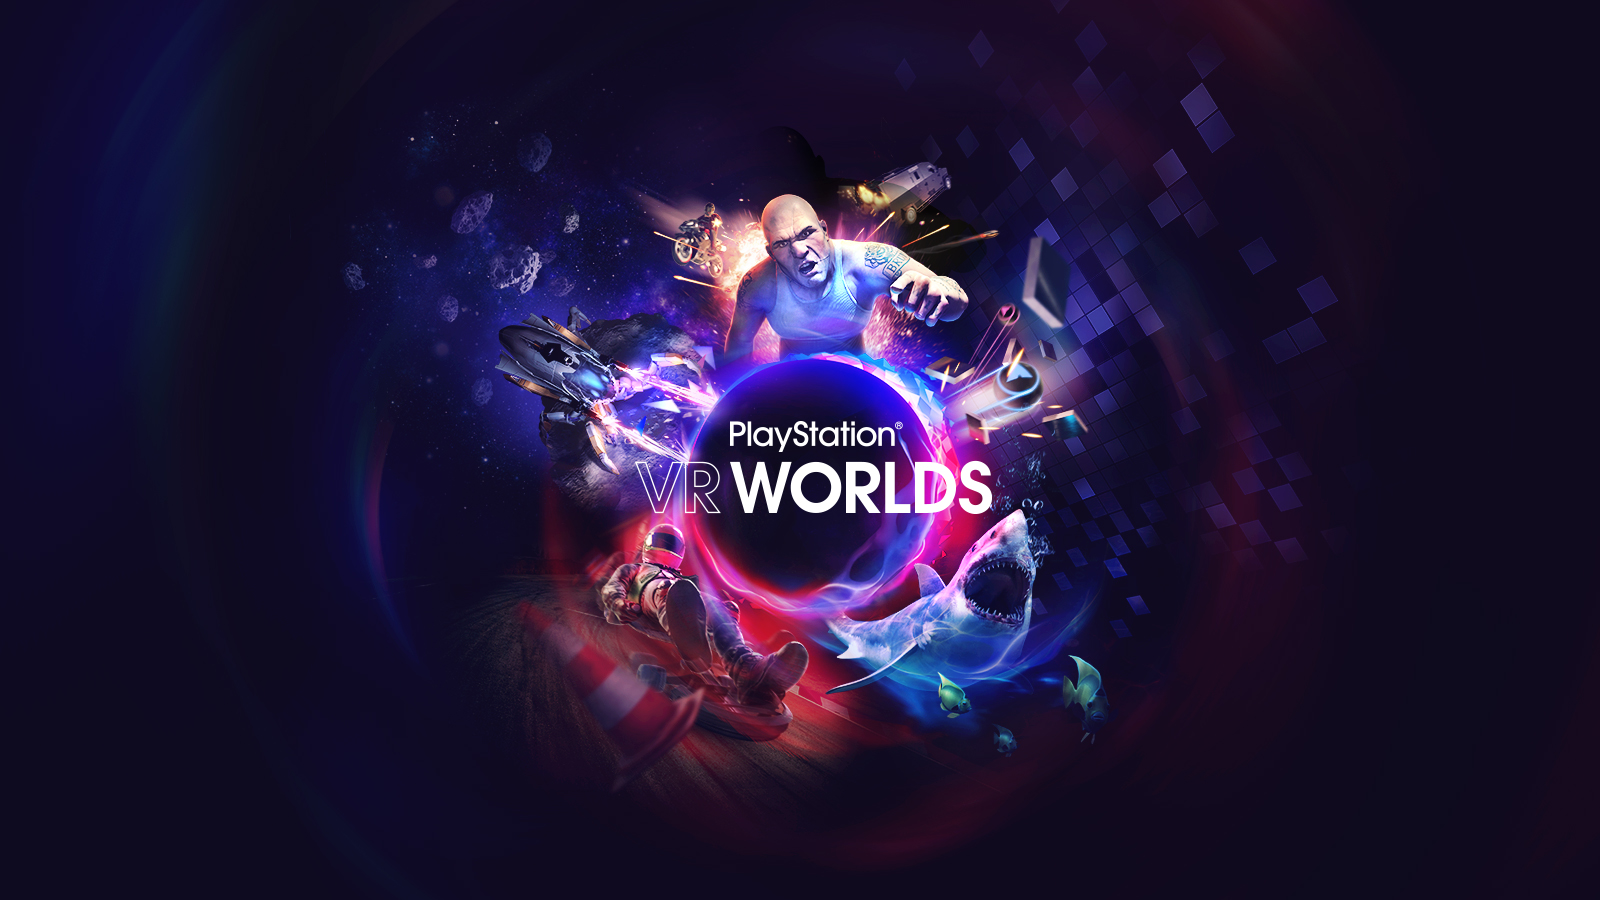 PS VR World